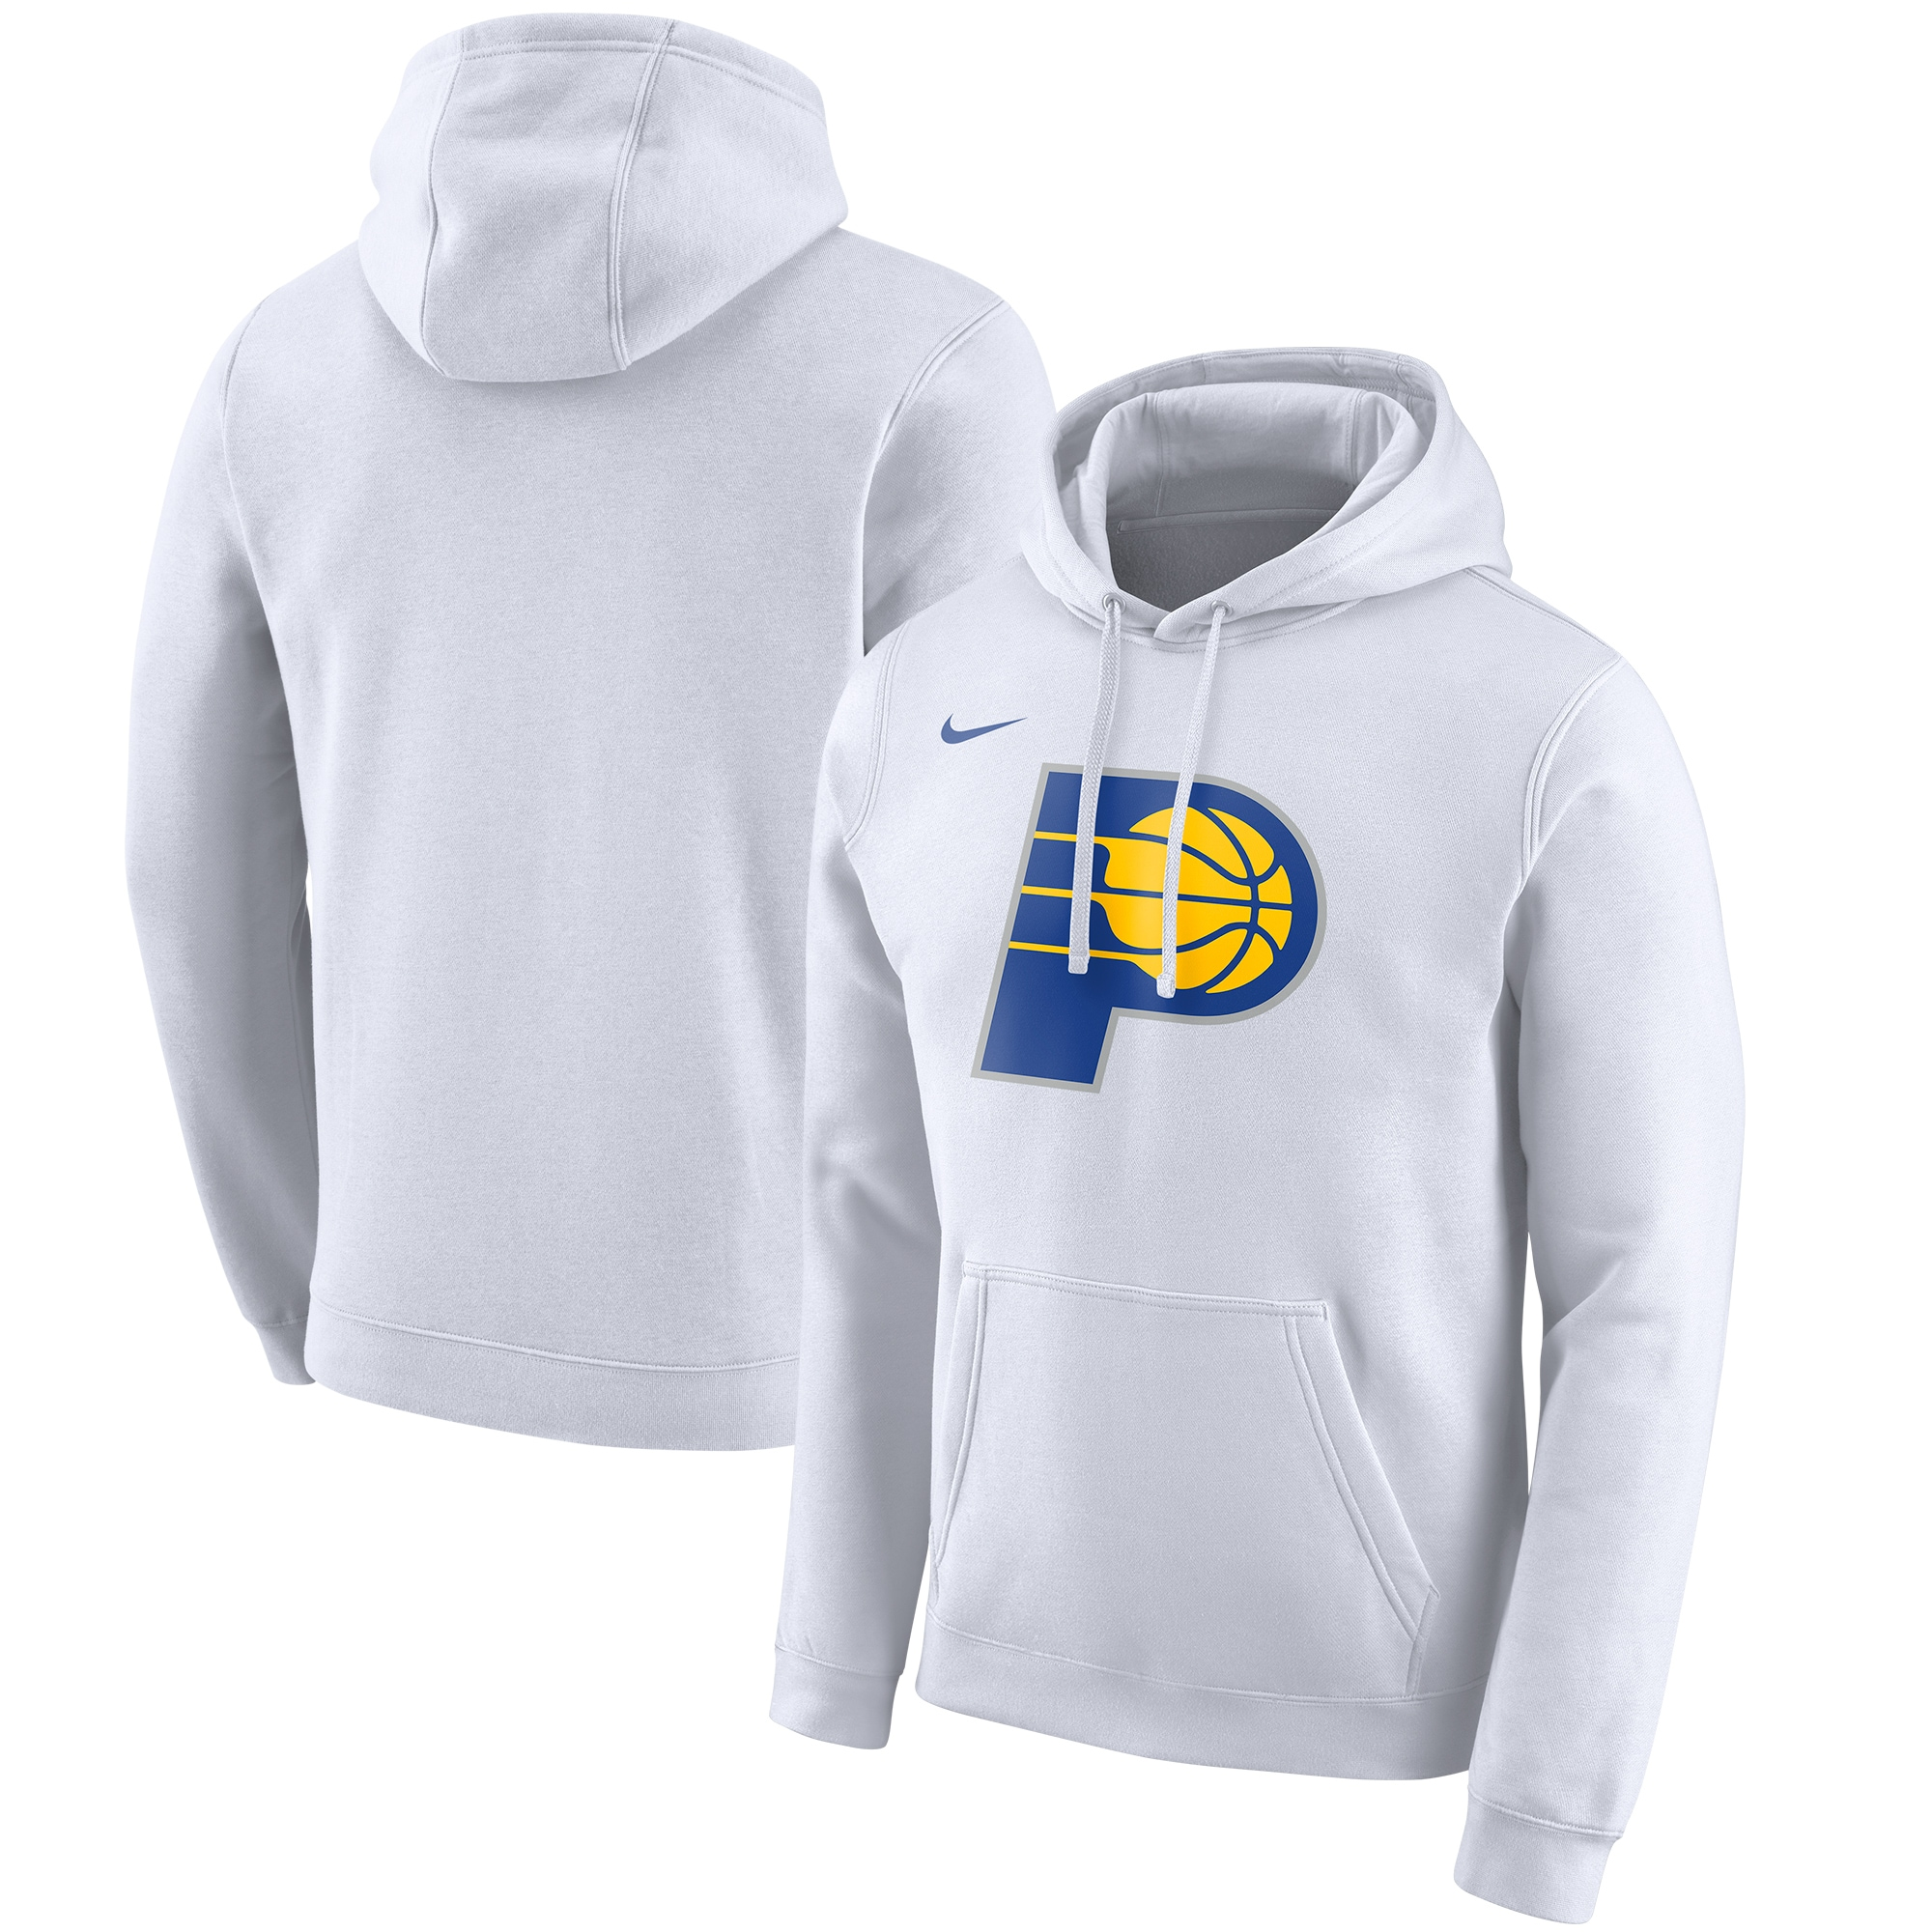 Indiana Pacers Nike 2019/20 City Edition Club Pullover Hoodie - White